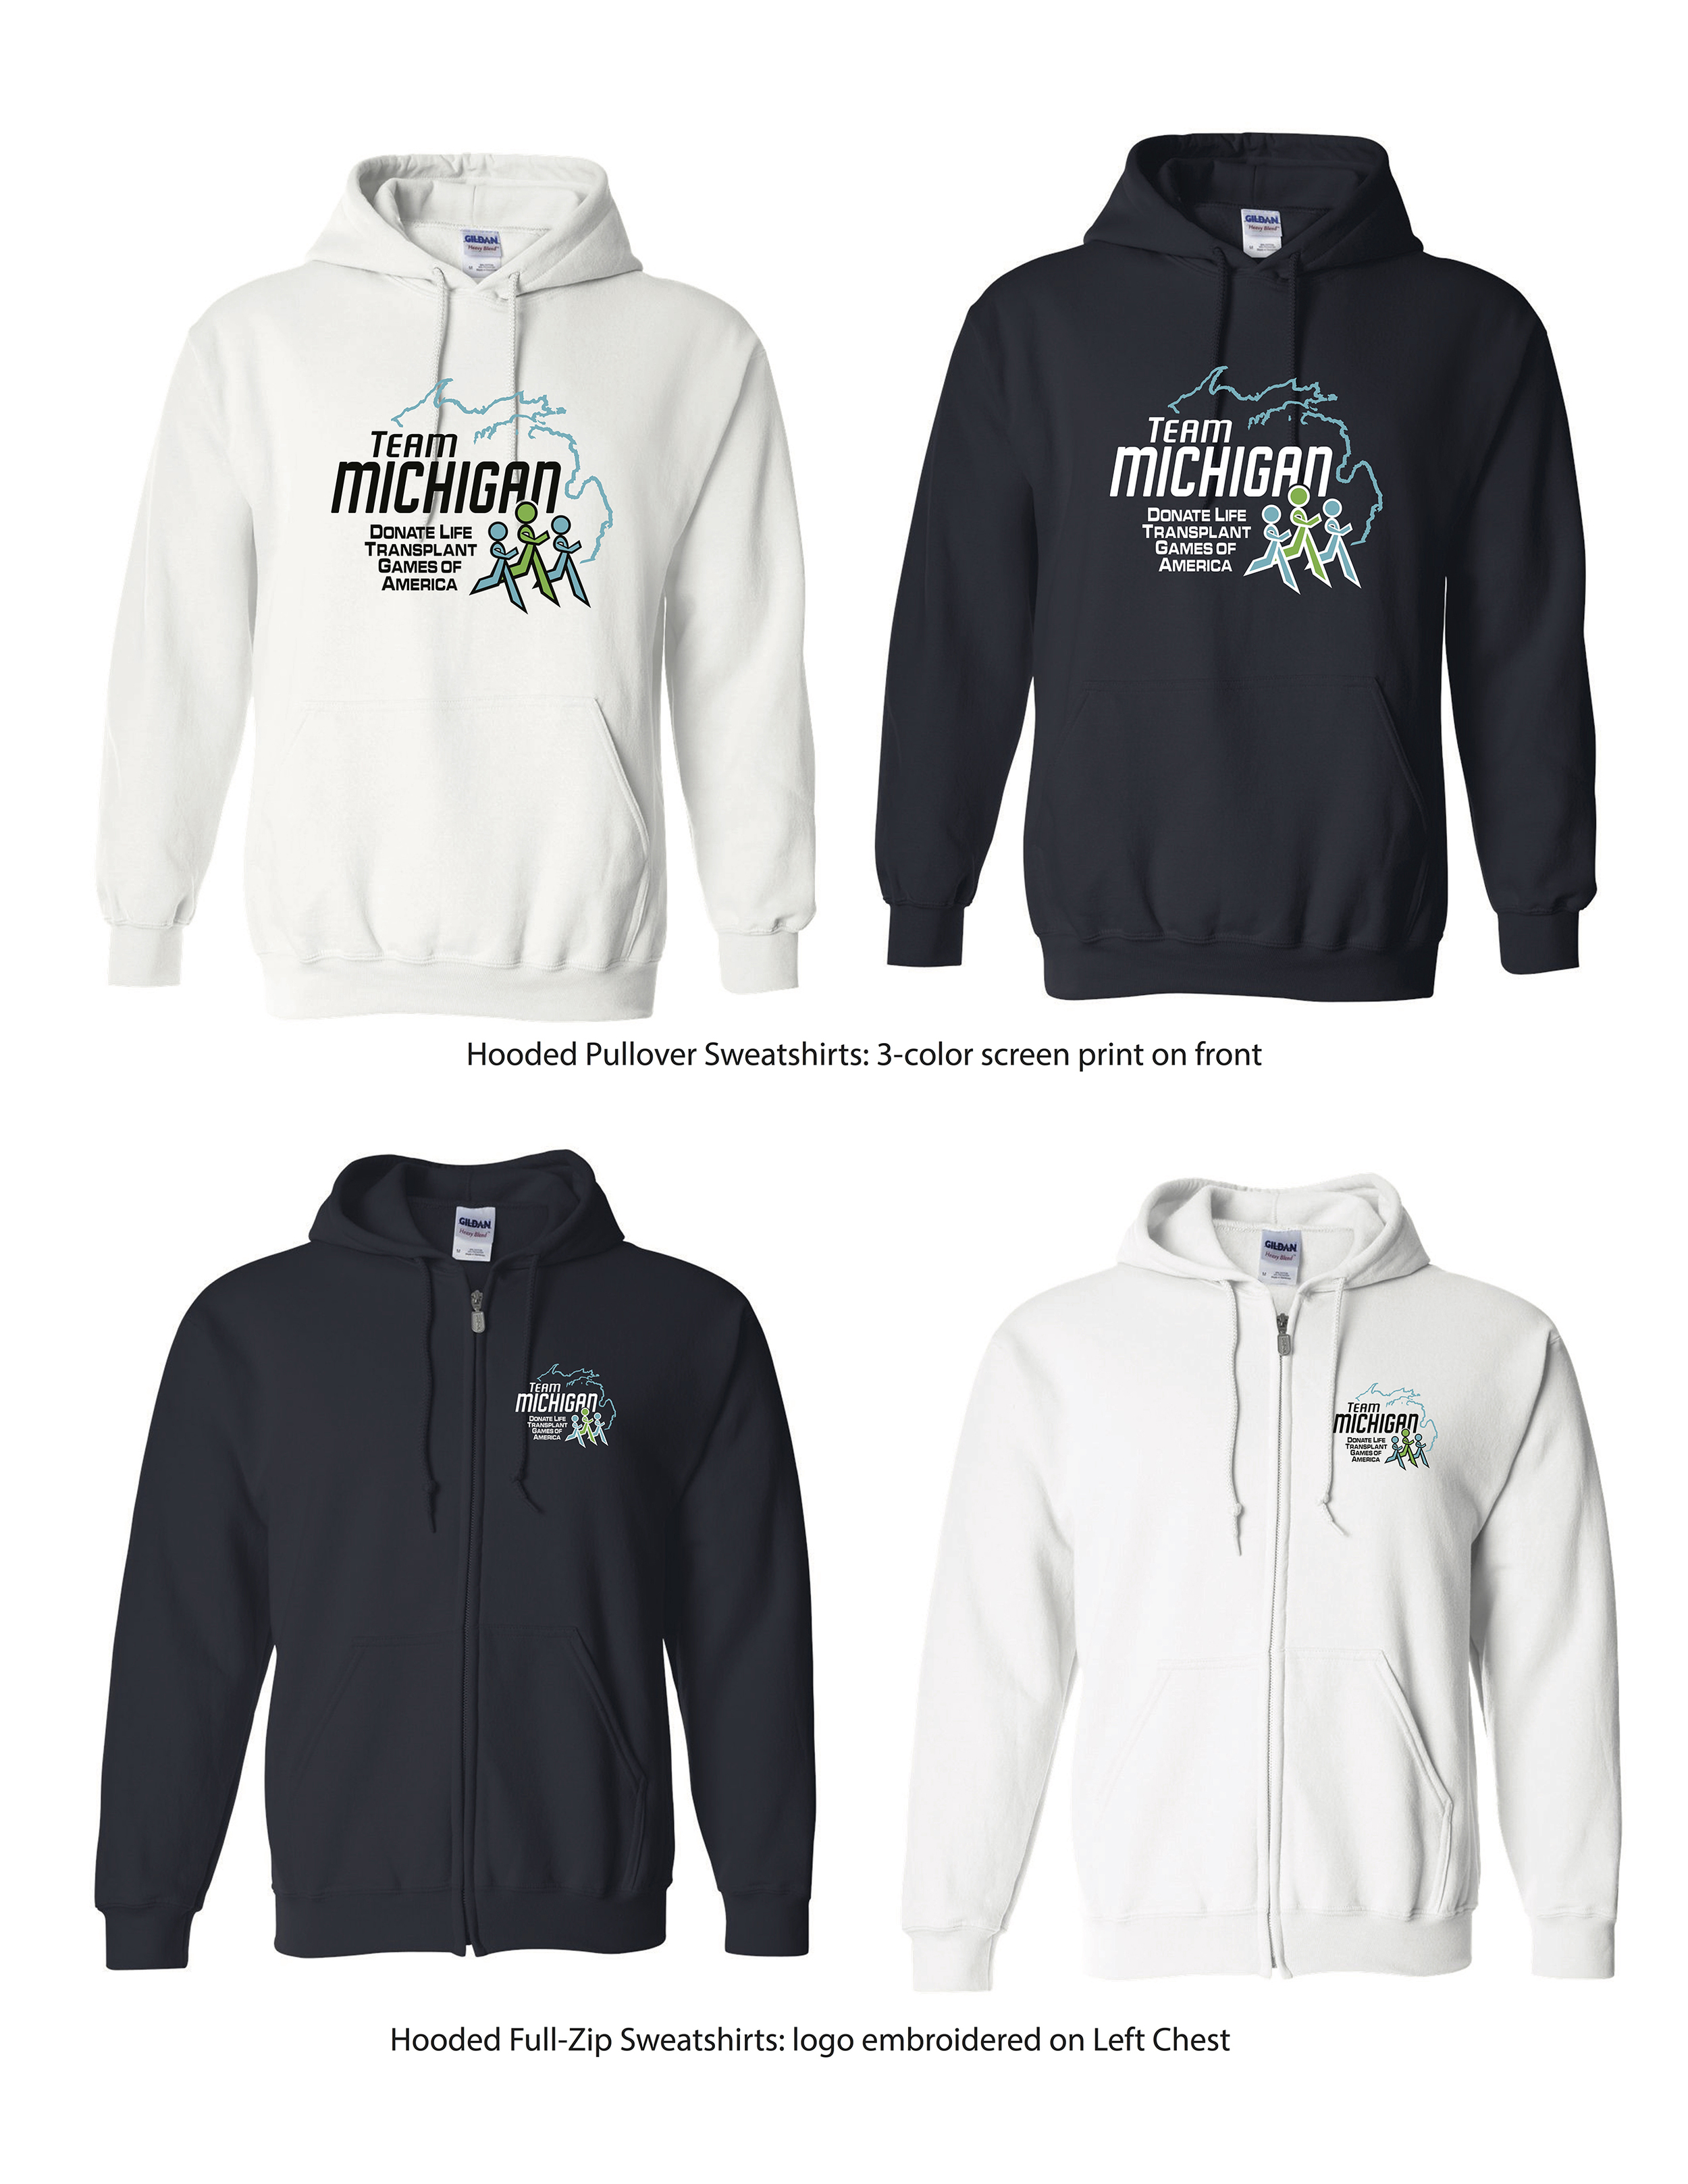 Hooded Sweatshirts-Pullover and Full Zip